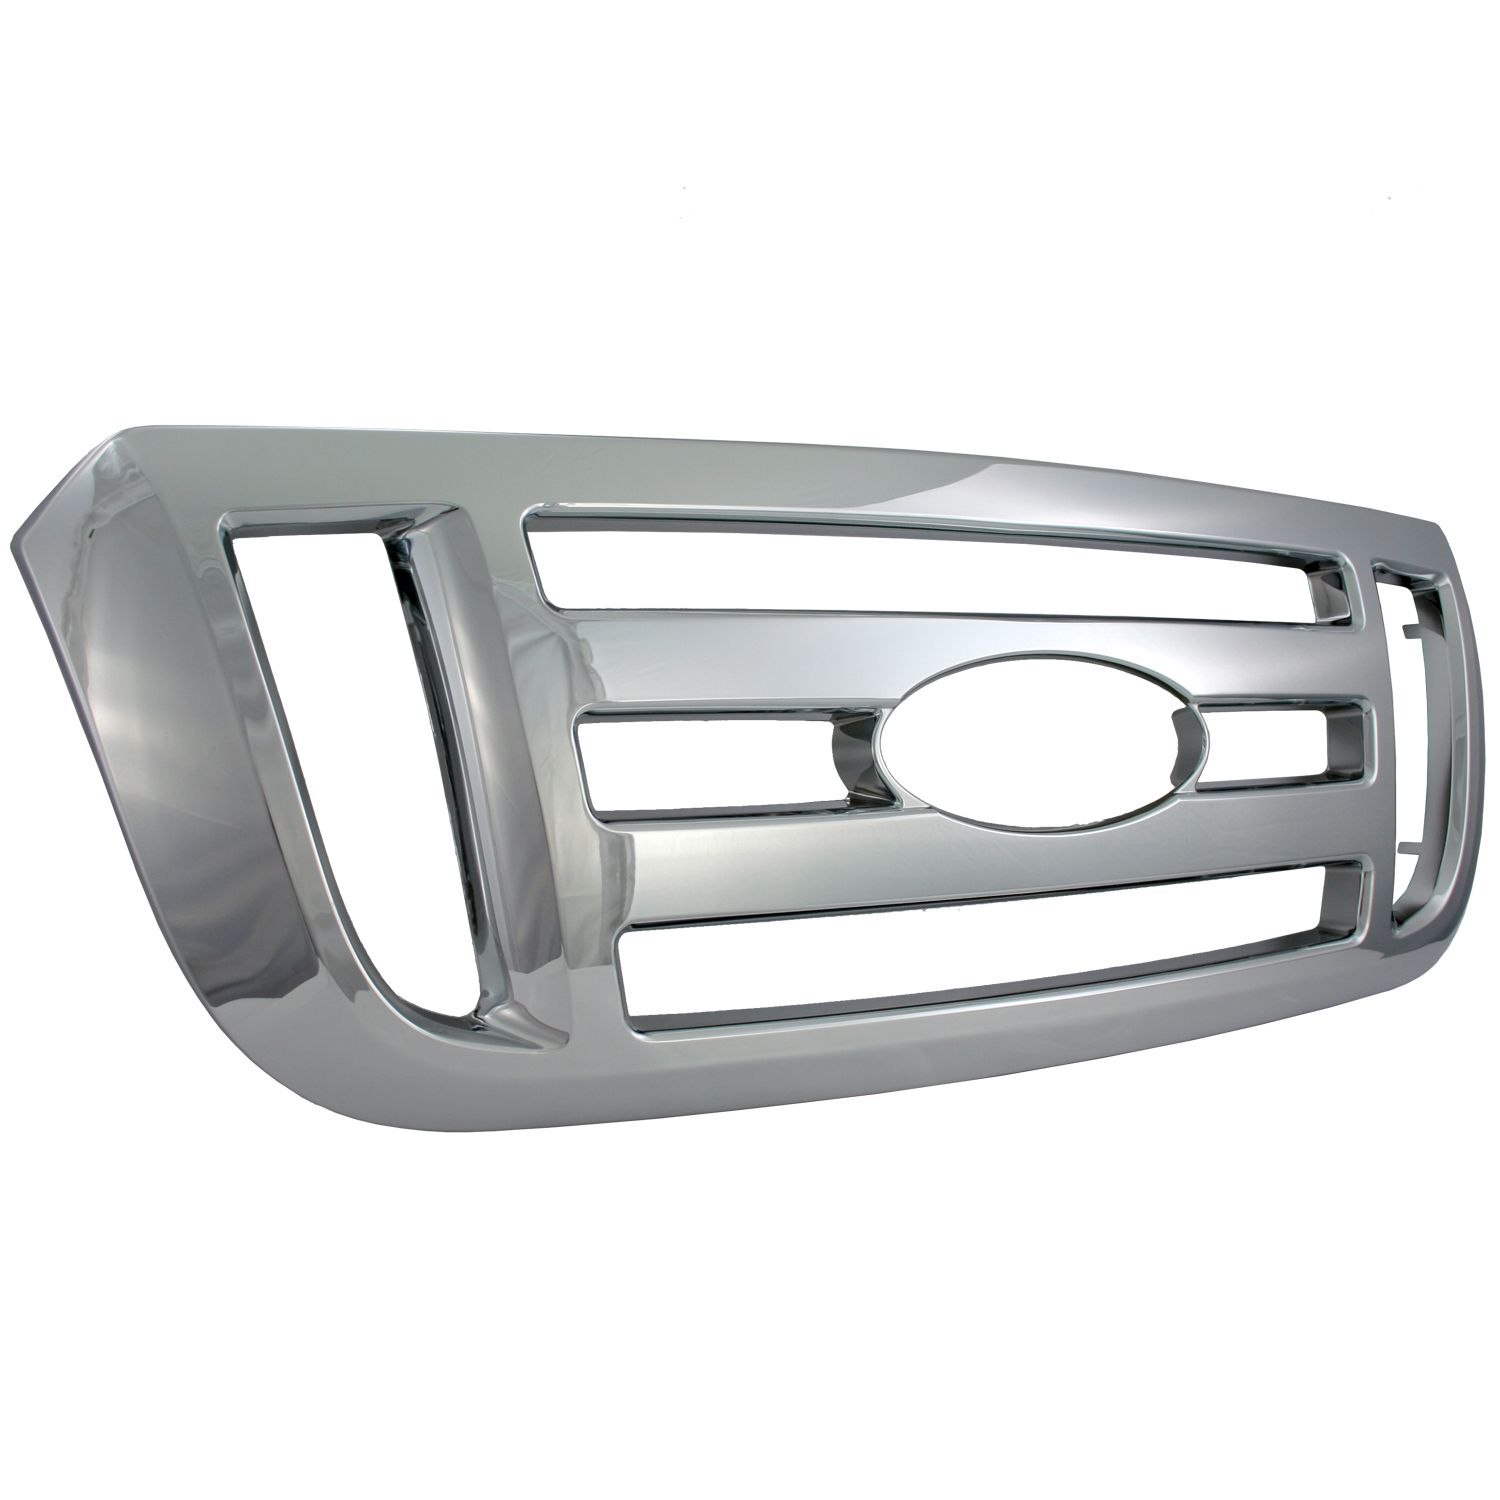 Bully GI-103 Triple Chrome Plated ABS Grille Overlay